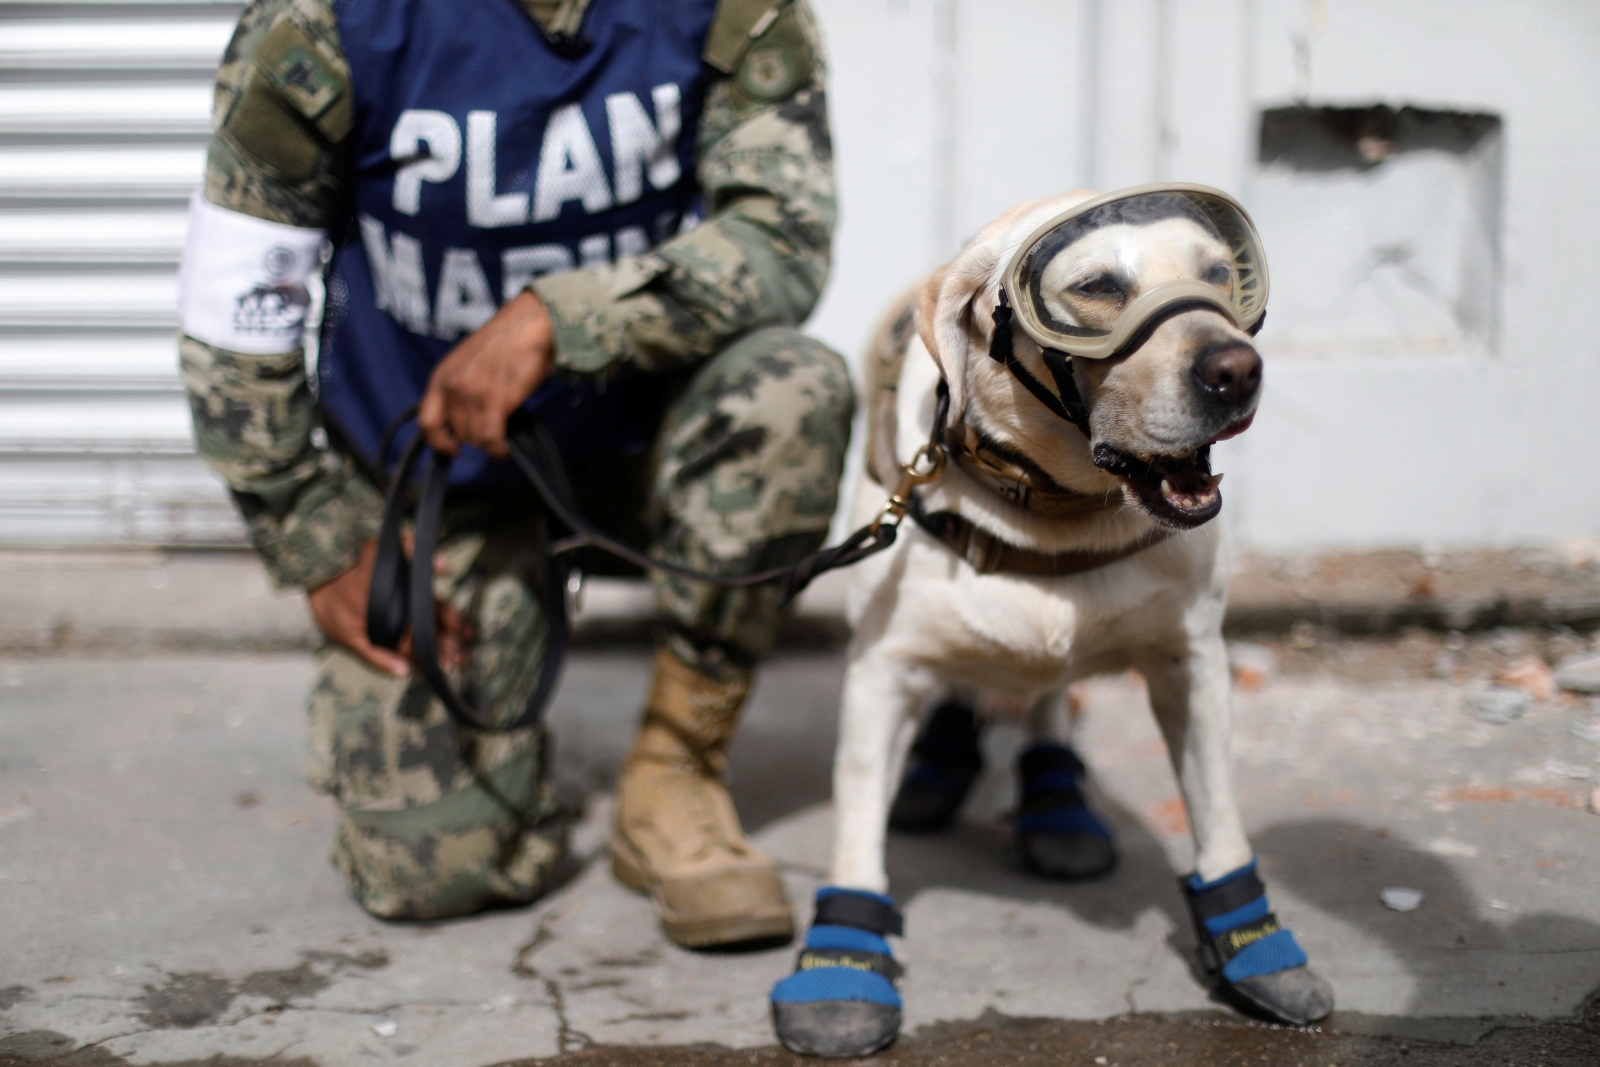 Heroic dogs are saving lives after the Mexico earthquake